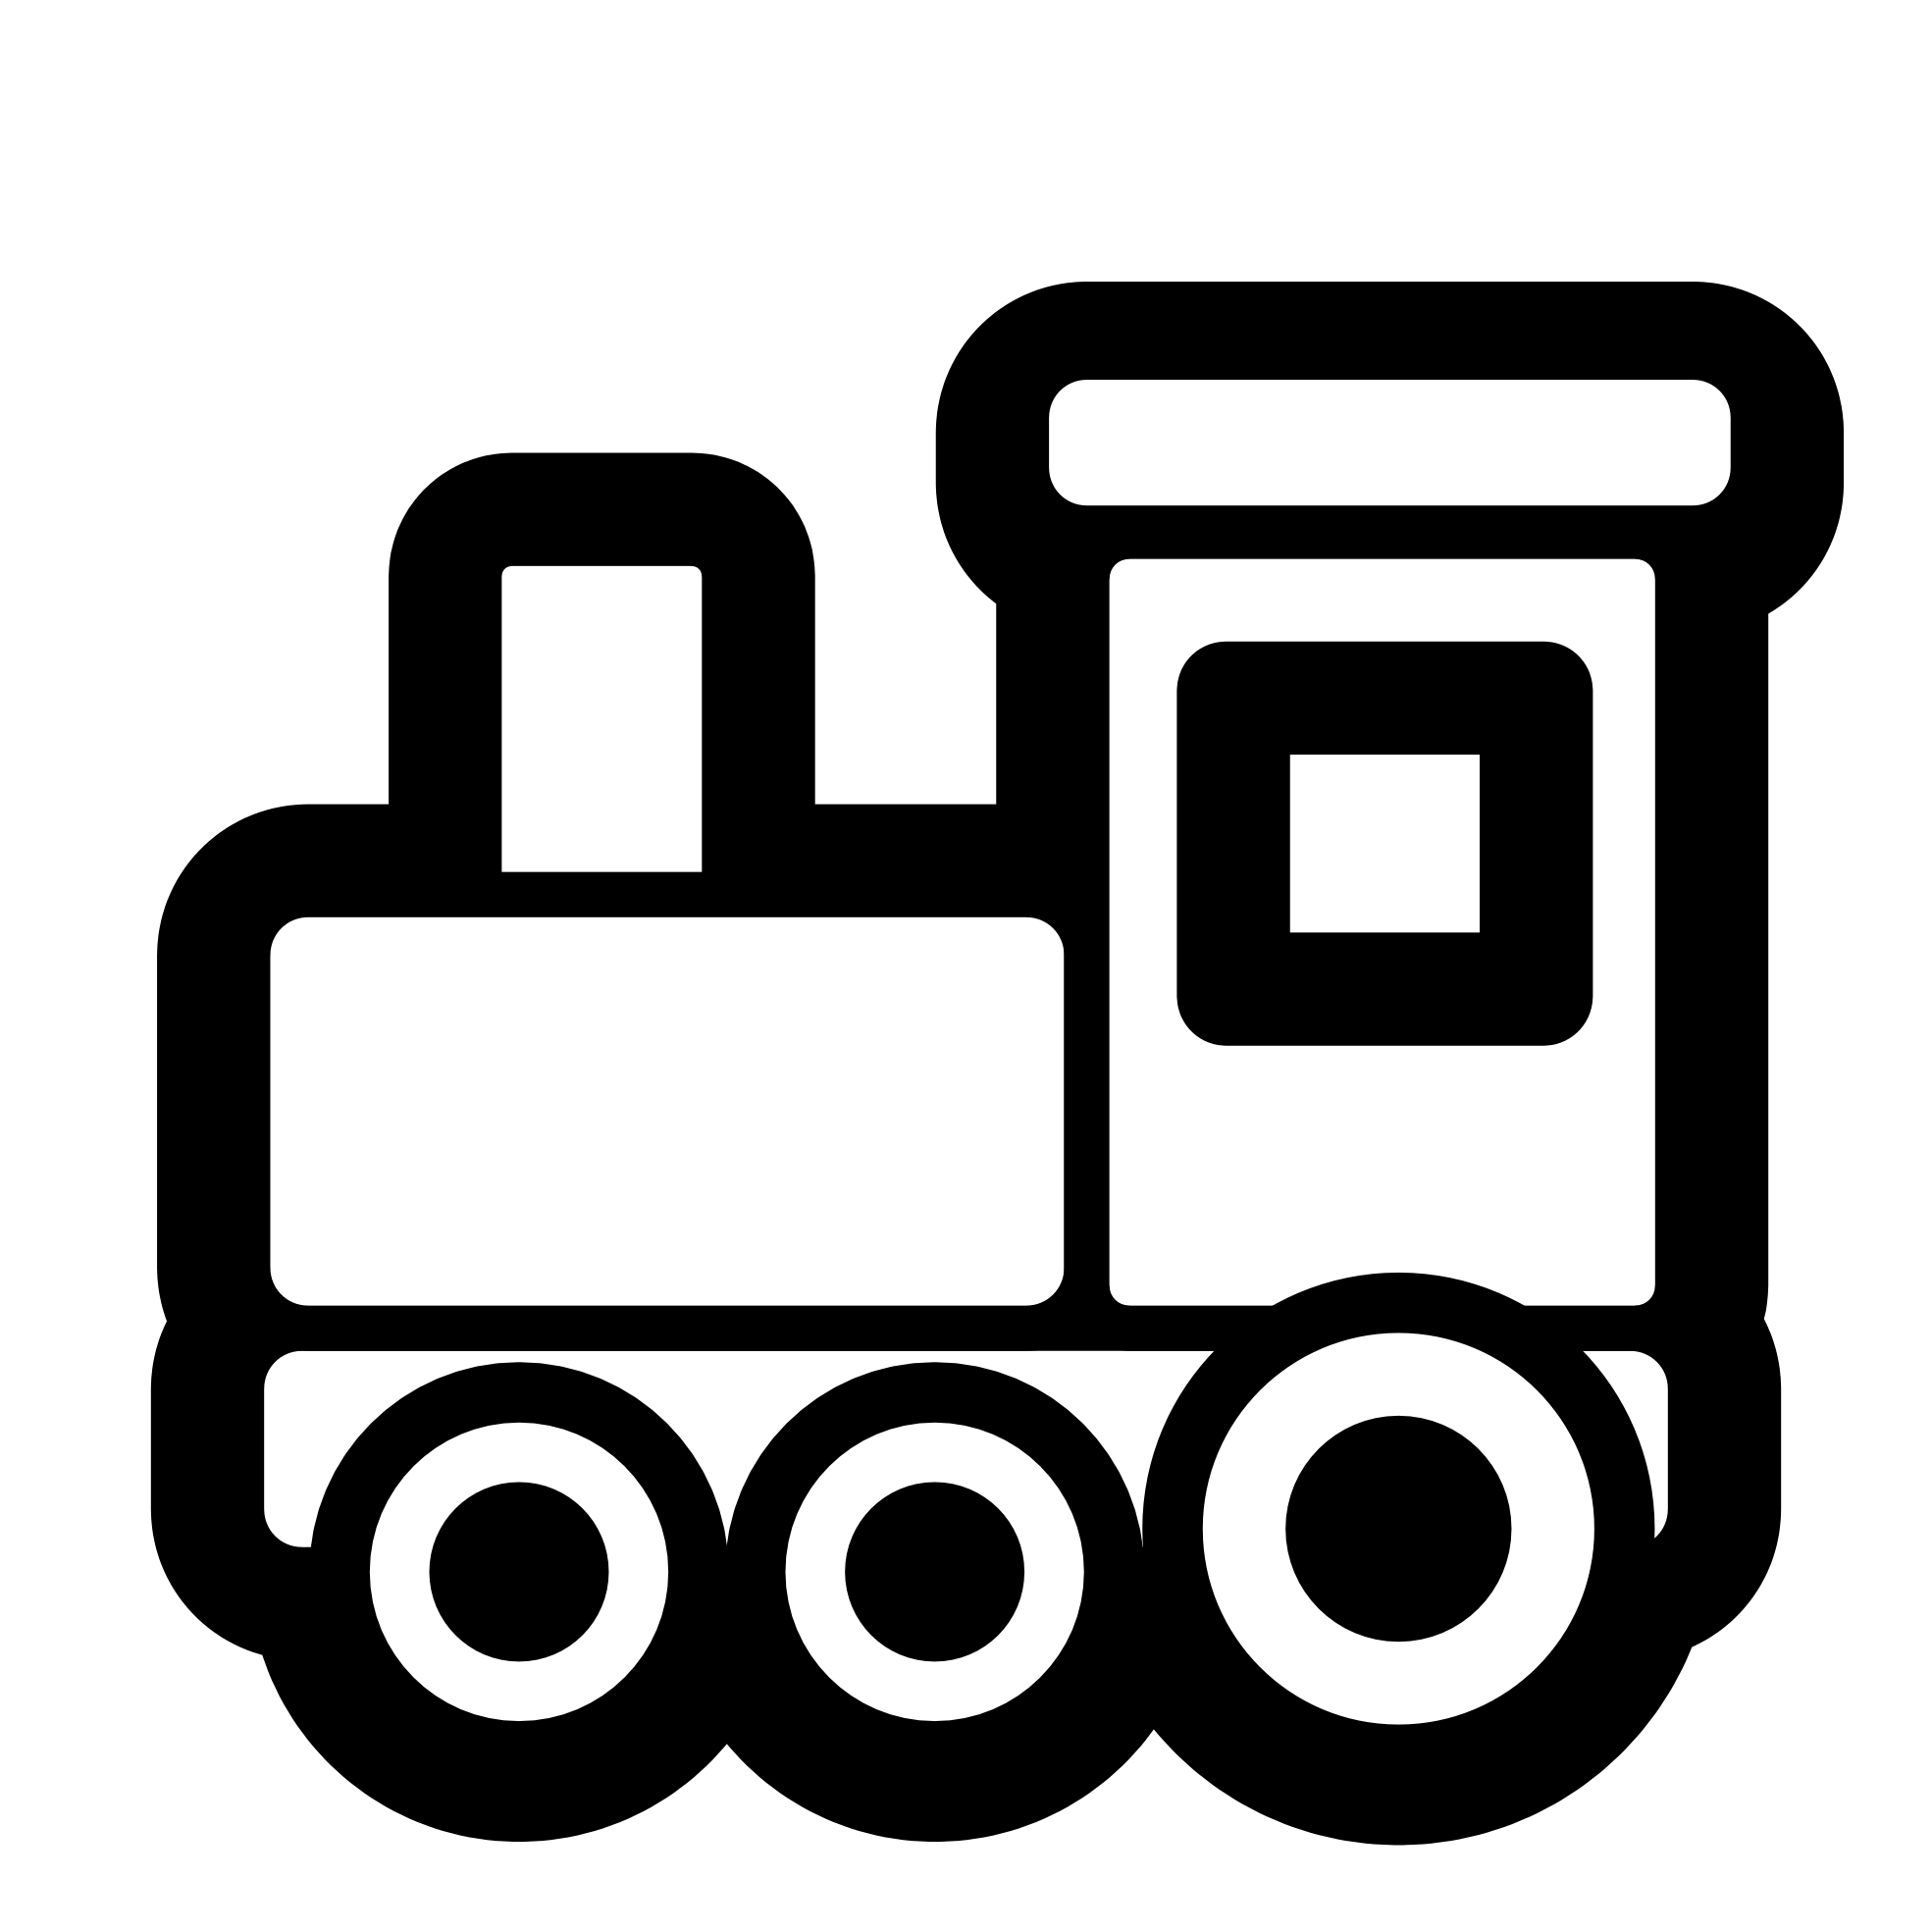 Toy Train Png Icon image #31603